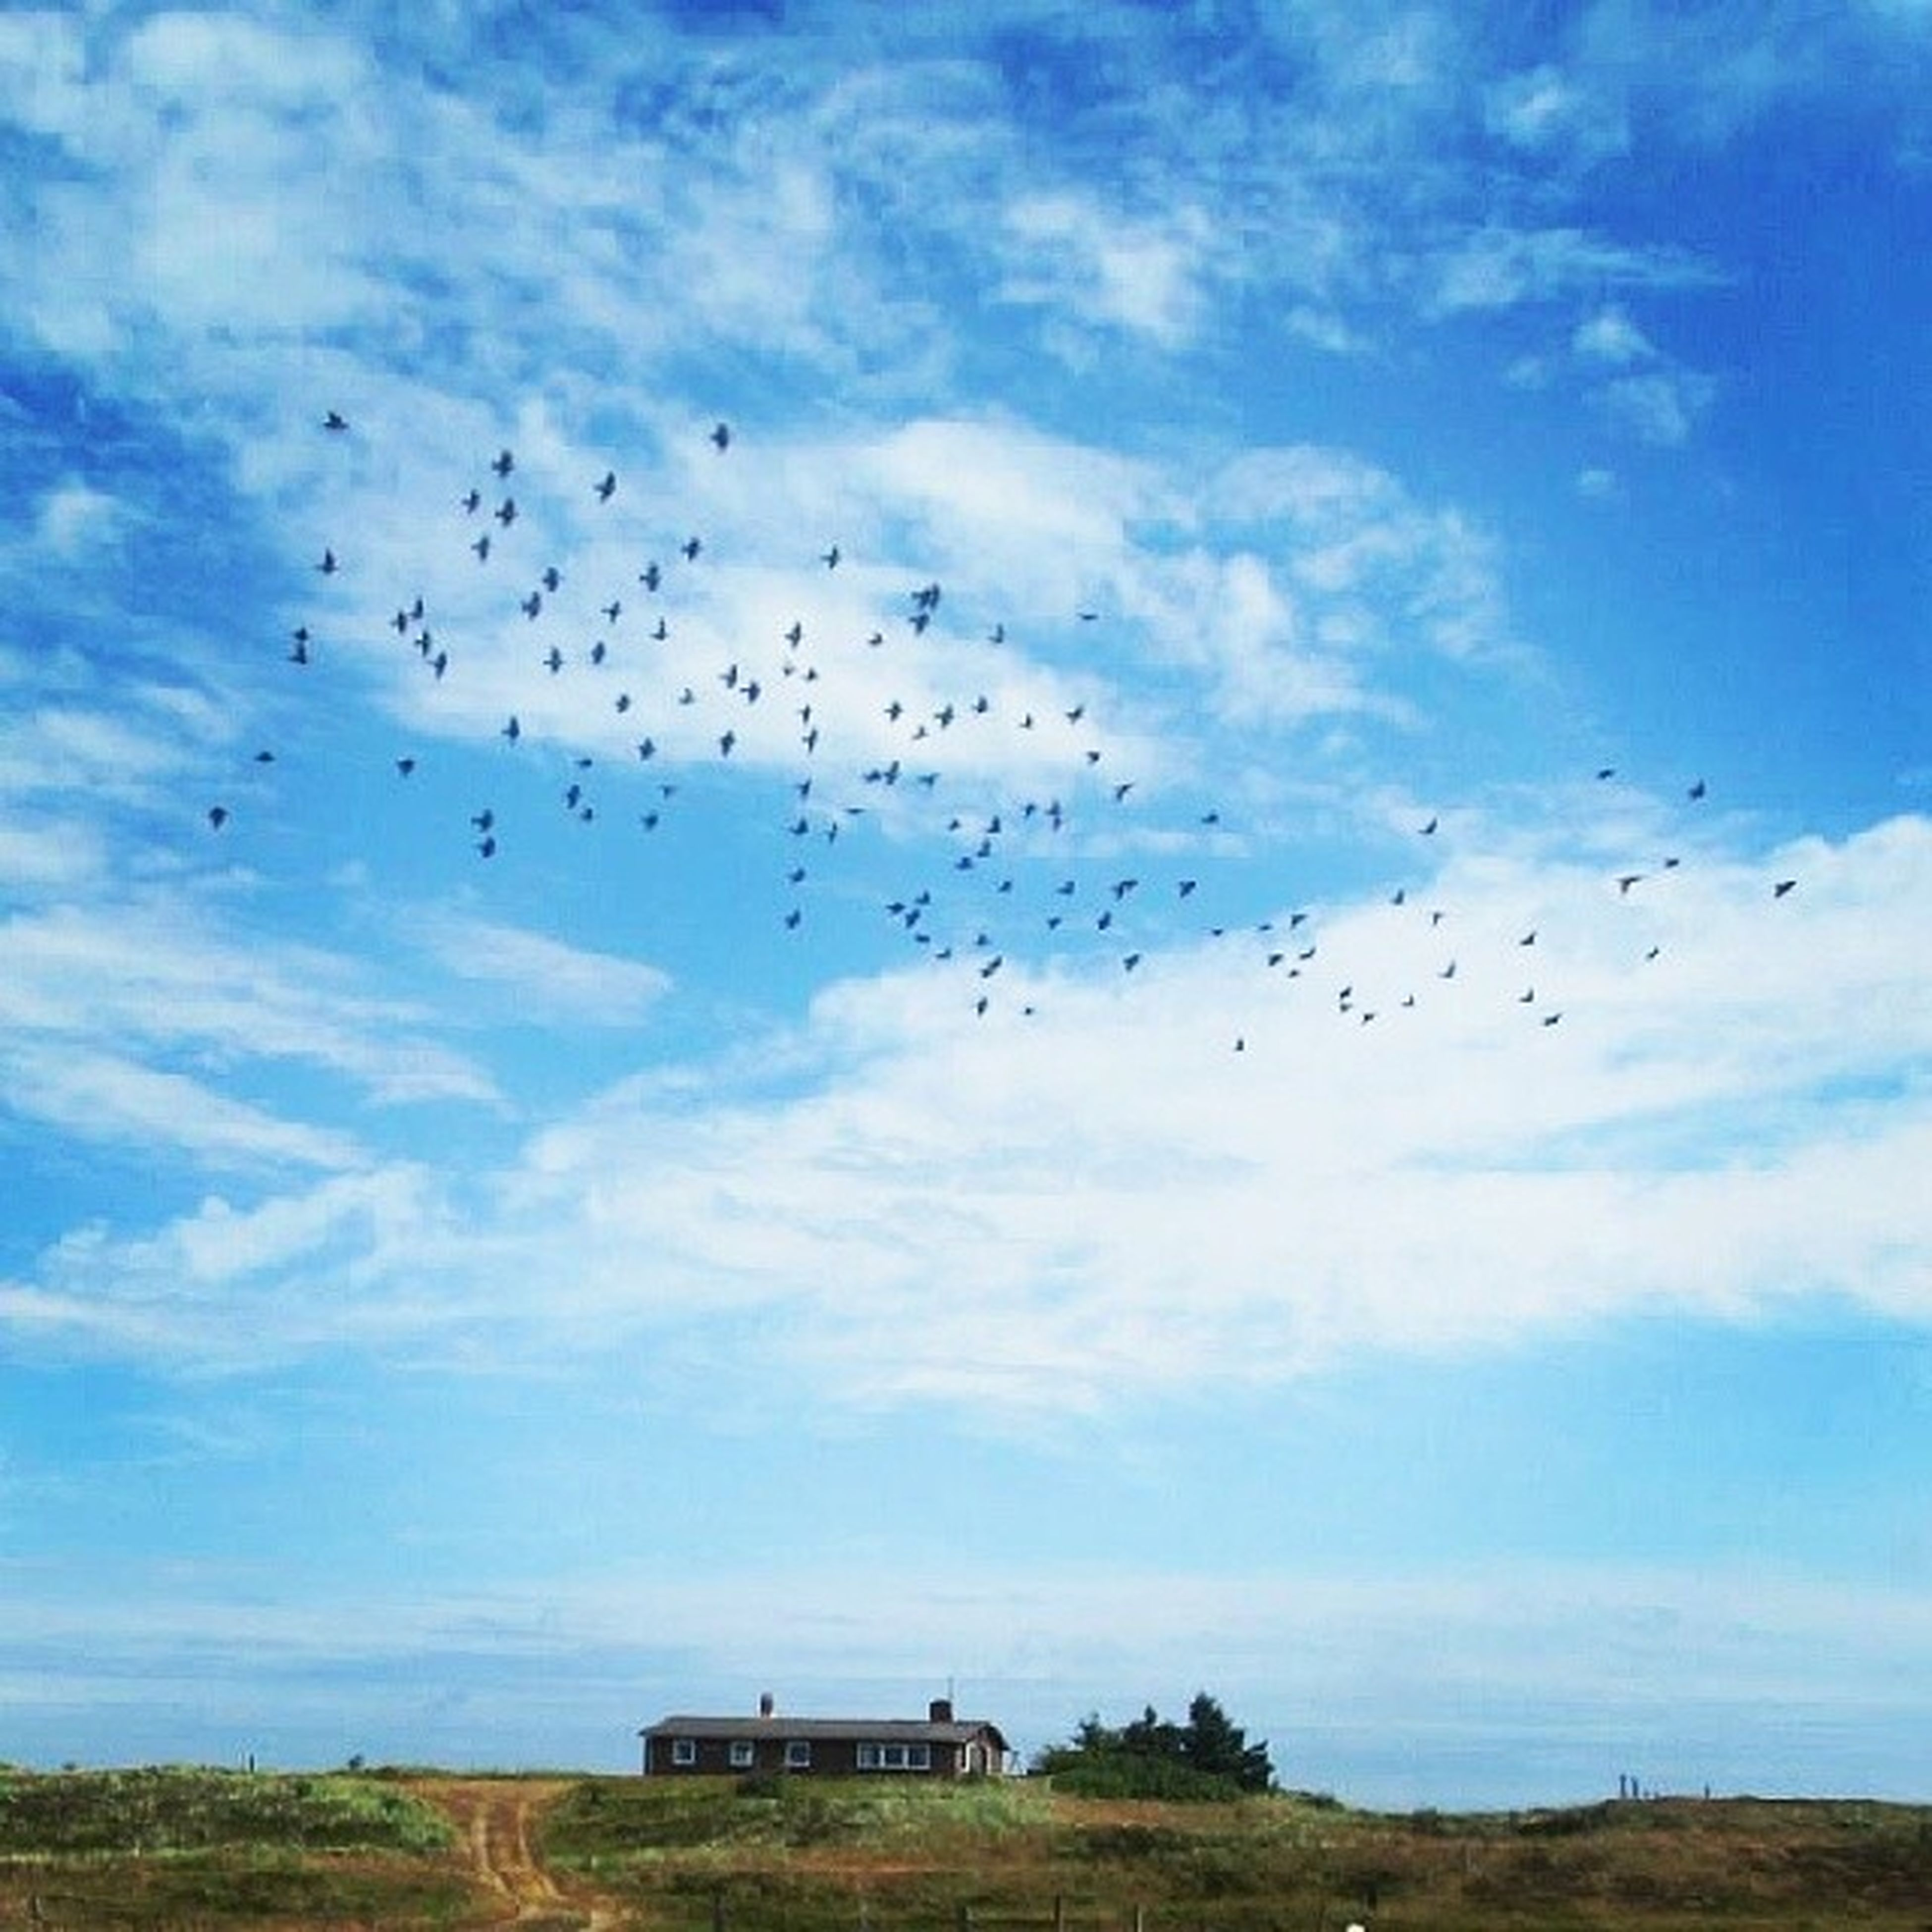 flying, bird, animal themes, animals in the wild, flock of birds, sky, wildlife, mid-air, cloud - sky, medium group of animals, low angle view, nature, blue, landscape, cloud, spread wings, beauty in nature, day